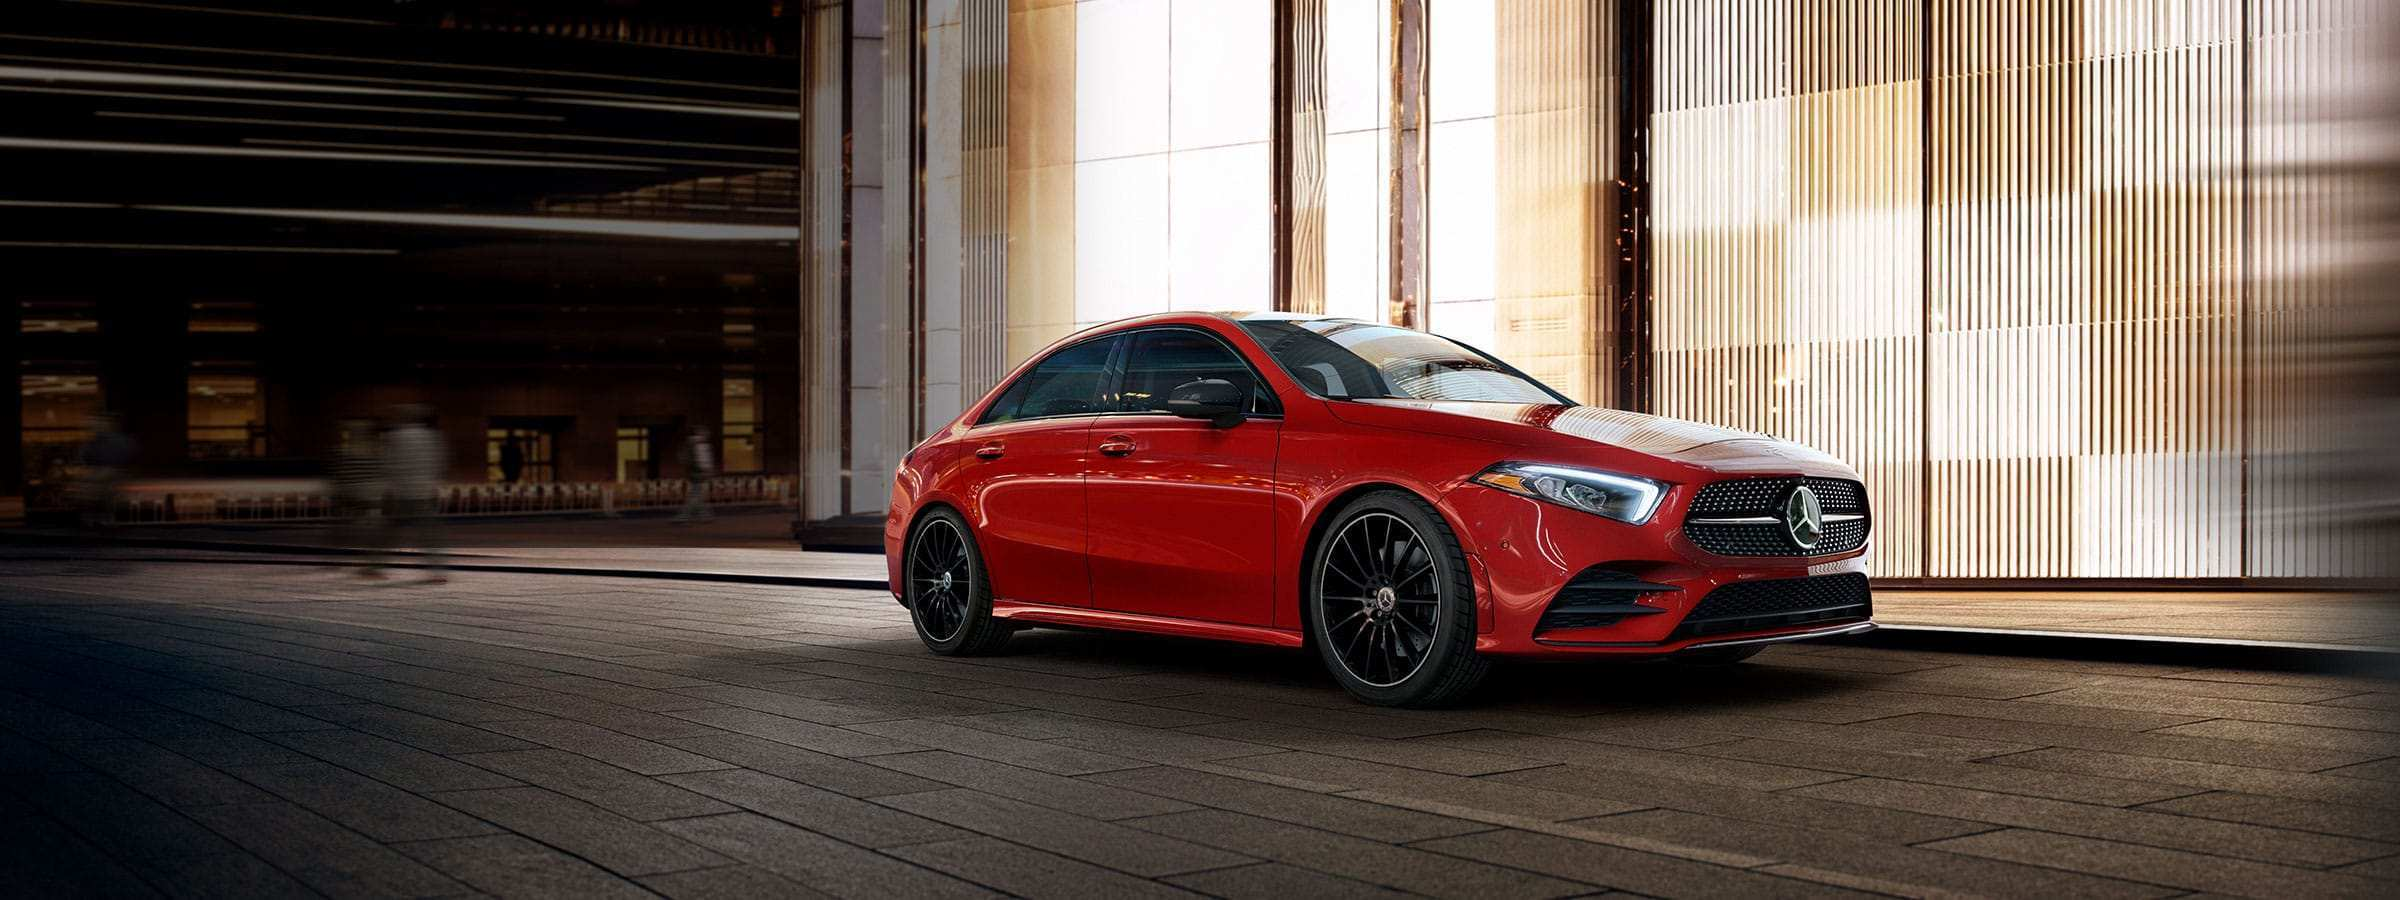 60 New 2019 Mercedes A Class Usa Release Date with 2019 Mercedes A Class Usa